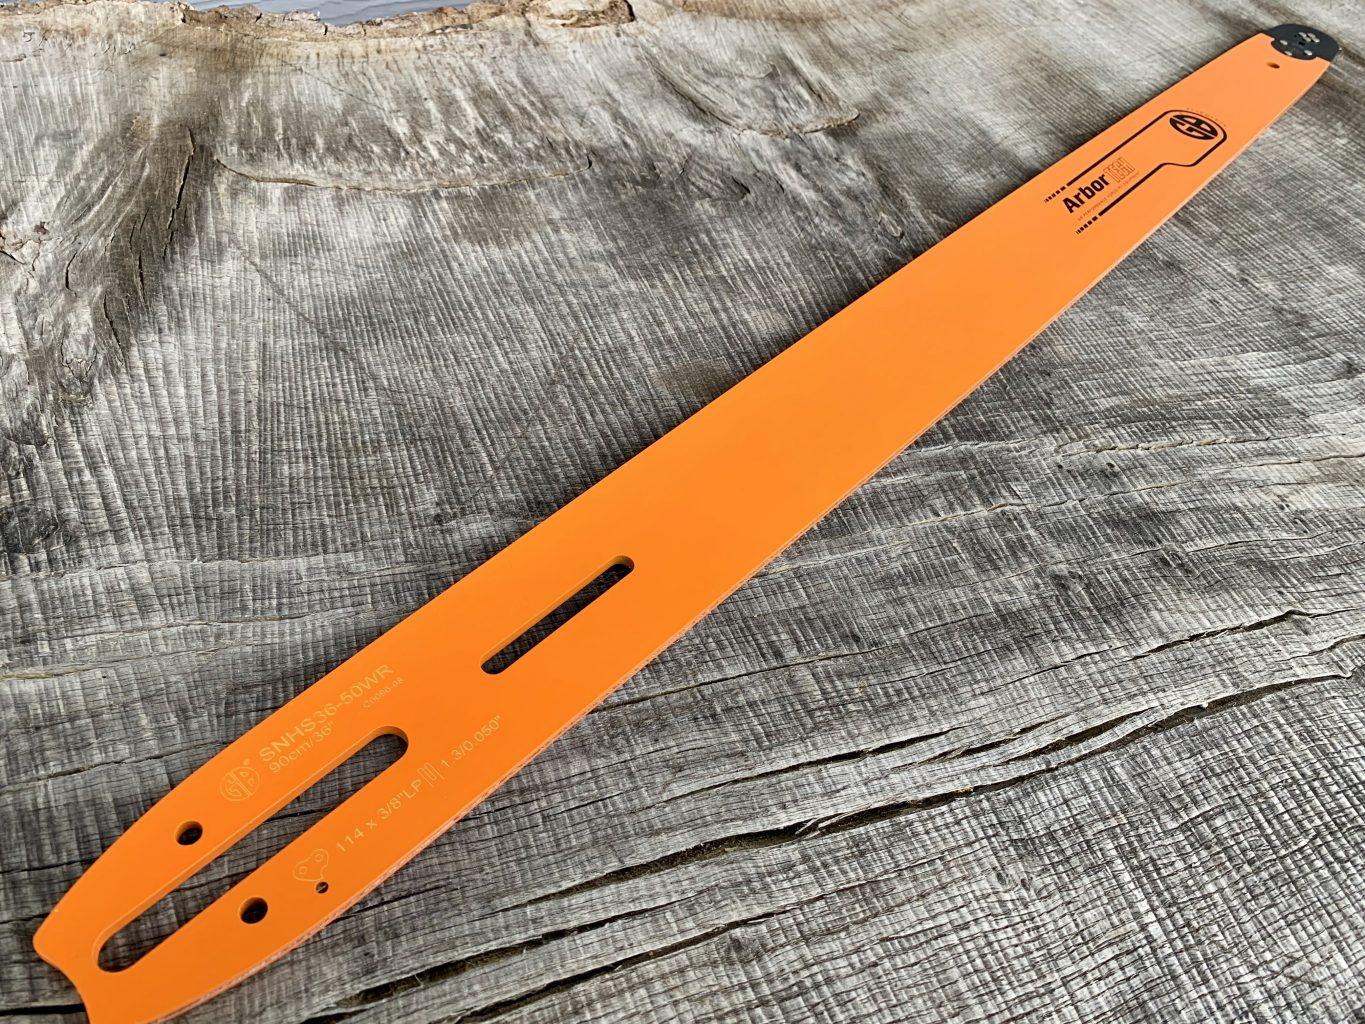 """SNHDS28-50WR 28""""[71cm] GB DOUBLE Slotted Lo Pro Milling Bar For Stihl 044, 045, 046, 048, 064, 065, 066, MS440, MS441, MS460, MS461, MS650, MS660, MS661 3/8 Lo Pro .050 92 drive links"""